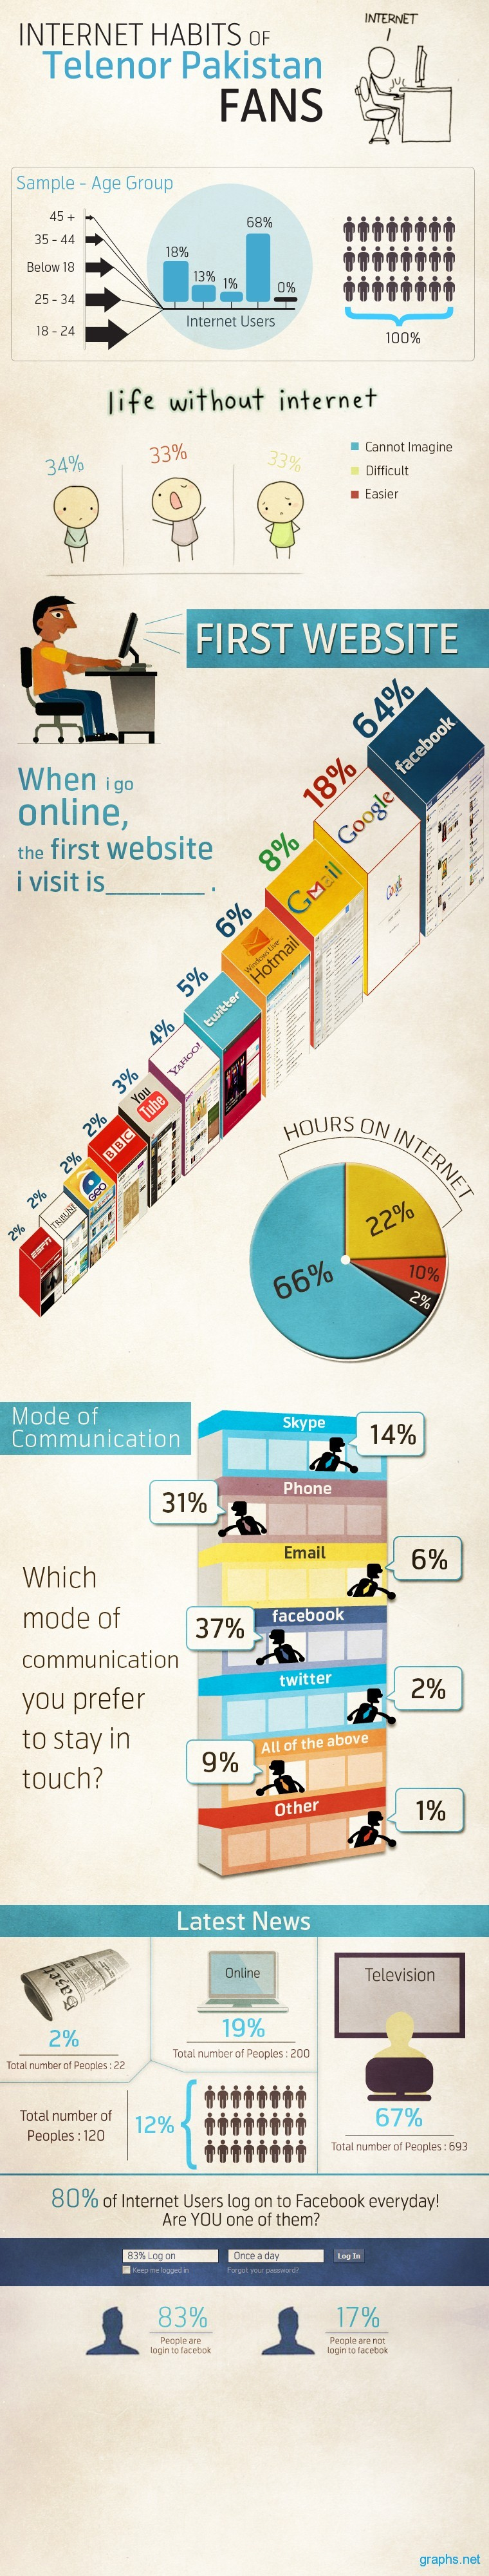 Internet Users Popular Habits